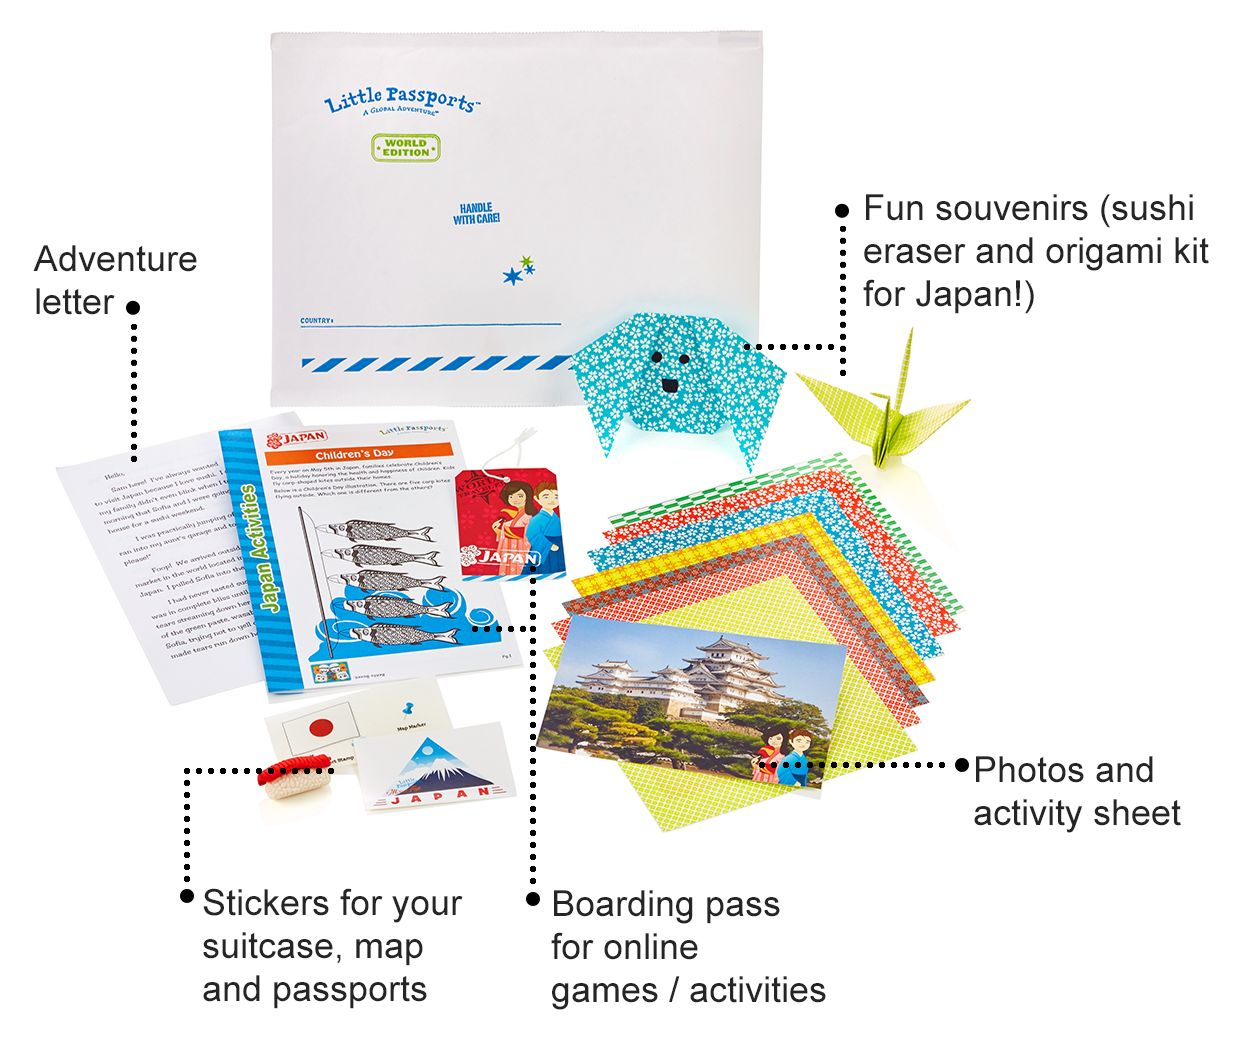 World Edition Japan package with details